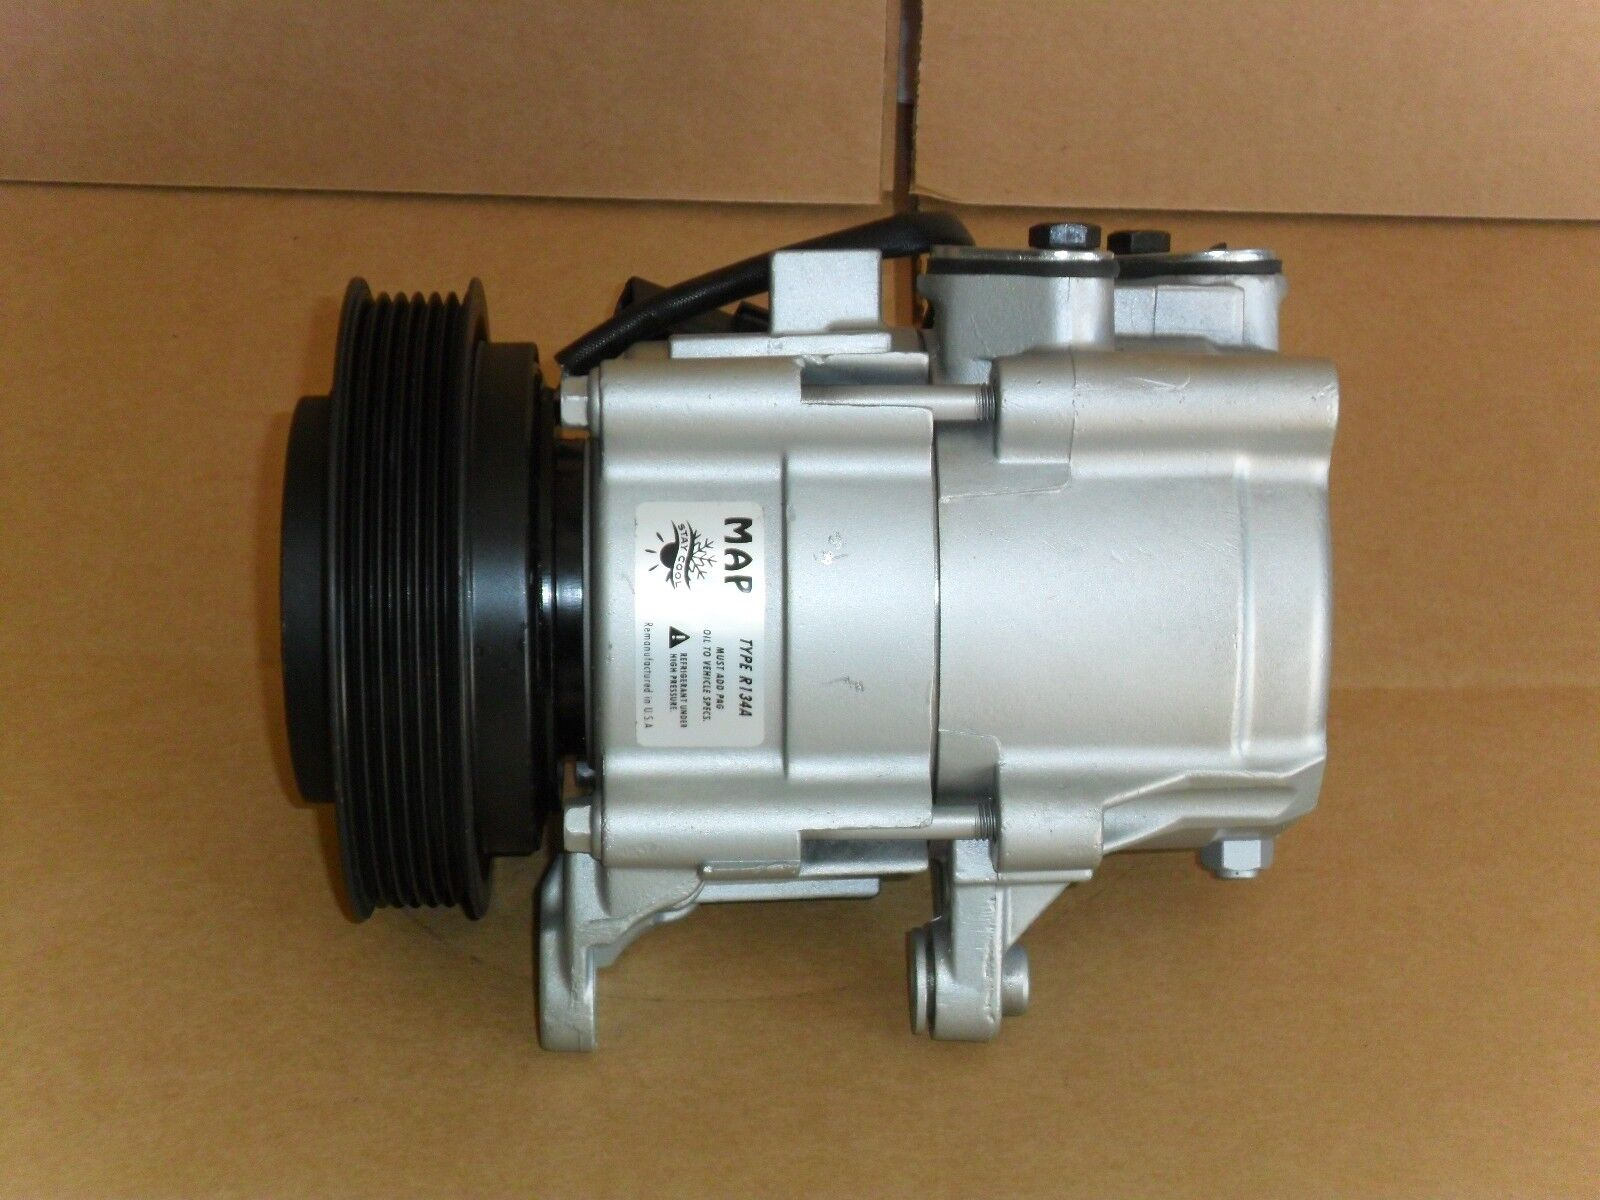 Used Jeep A/C Compressors and Clutches for Sale - Page 10